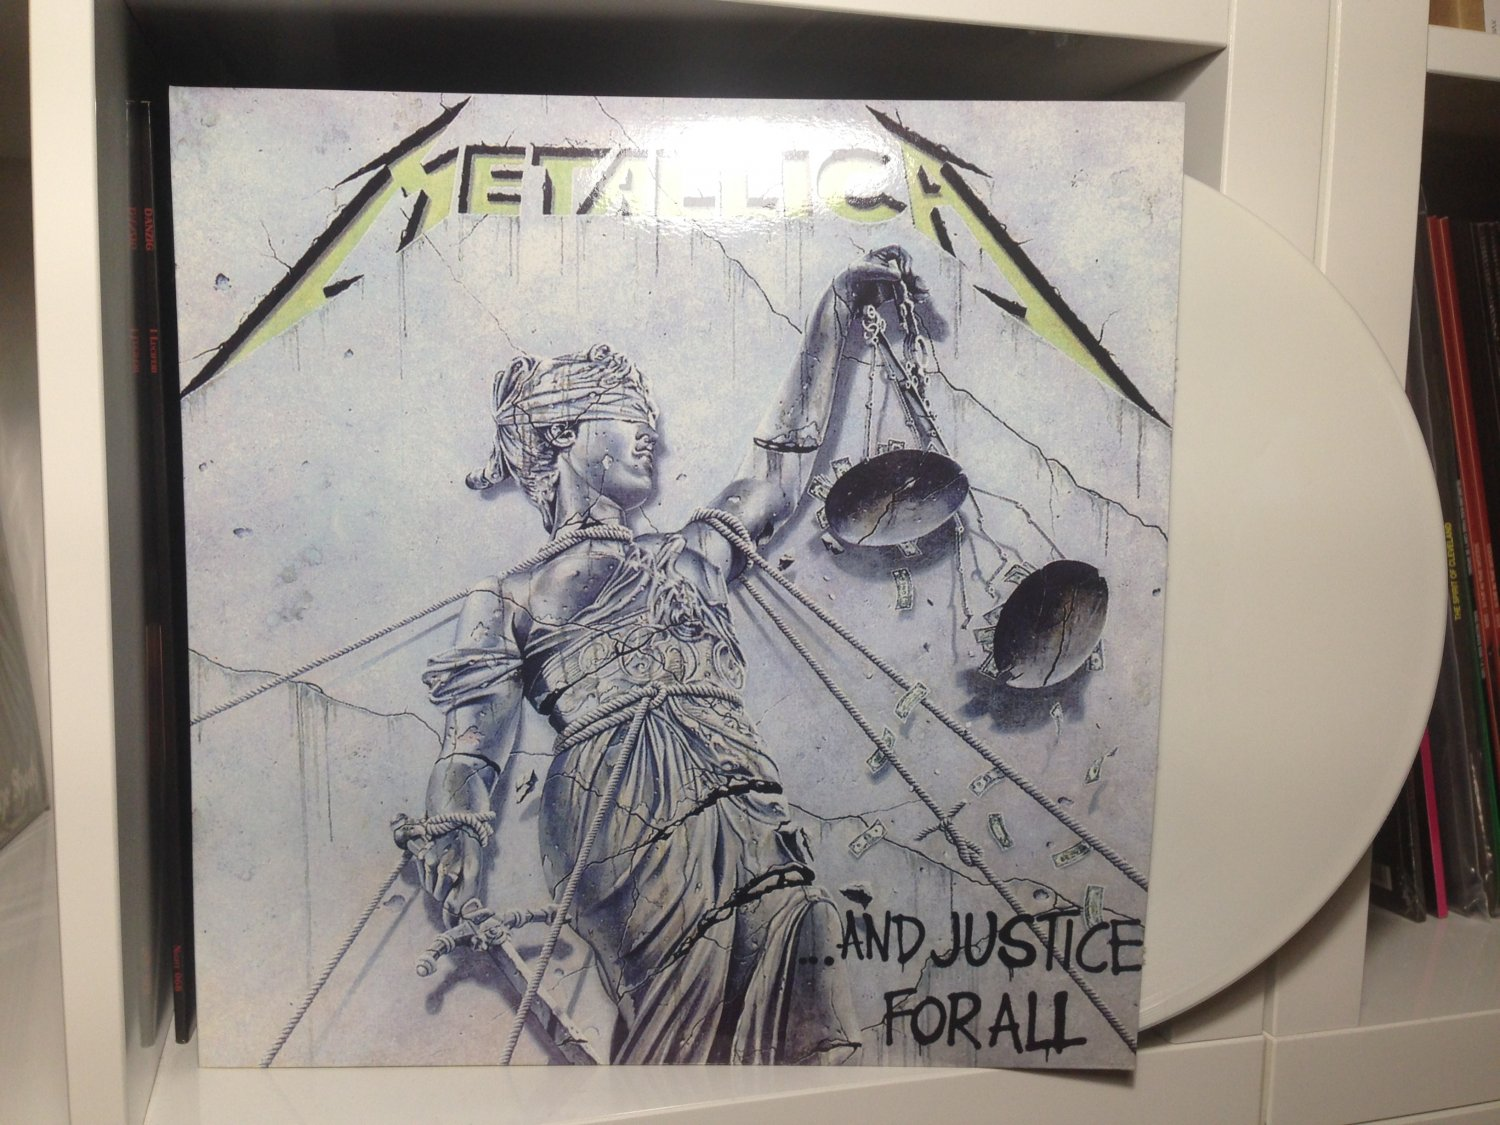 METALLICA �2LP and justice for all